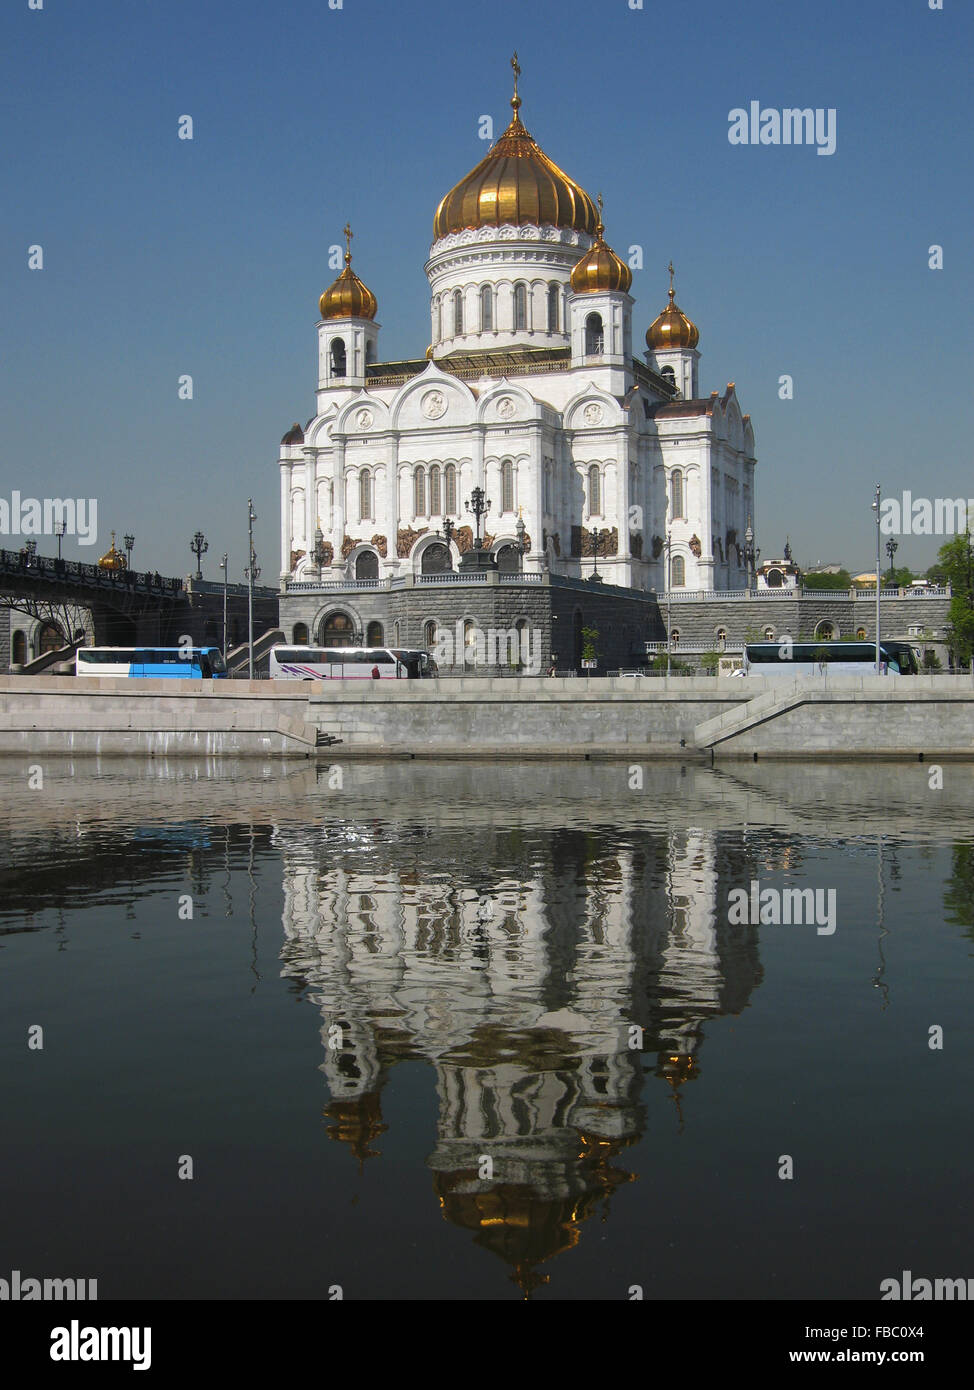 Cathedral of Jesus Christ Saviour in Moscow, view from the river with reflection. Date of recording 30.04.2008. - Stock Image